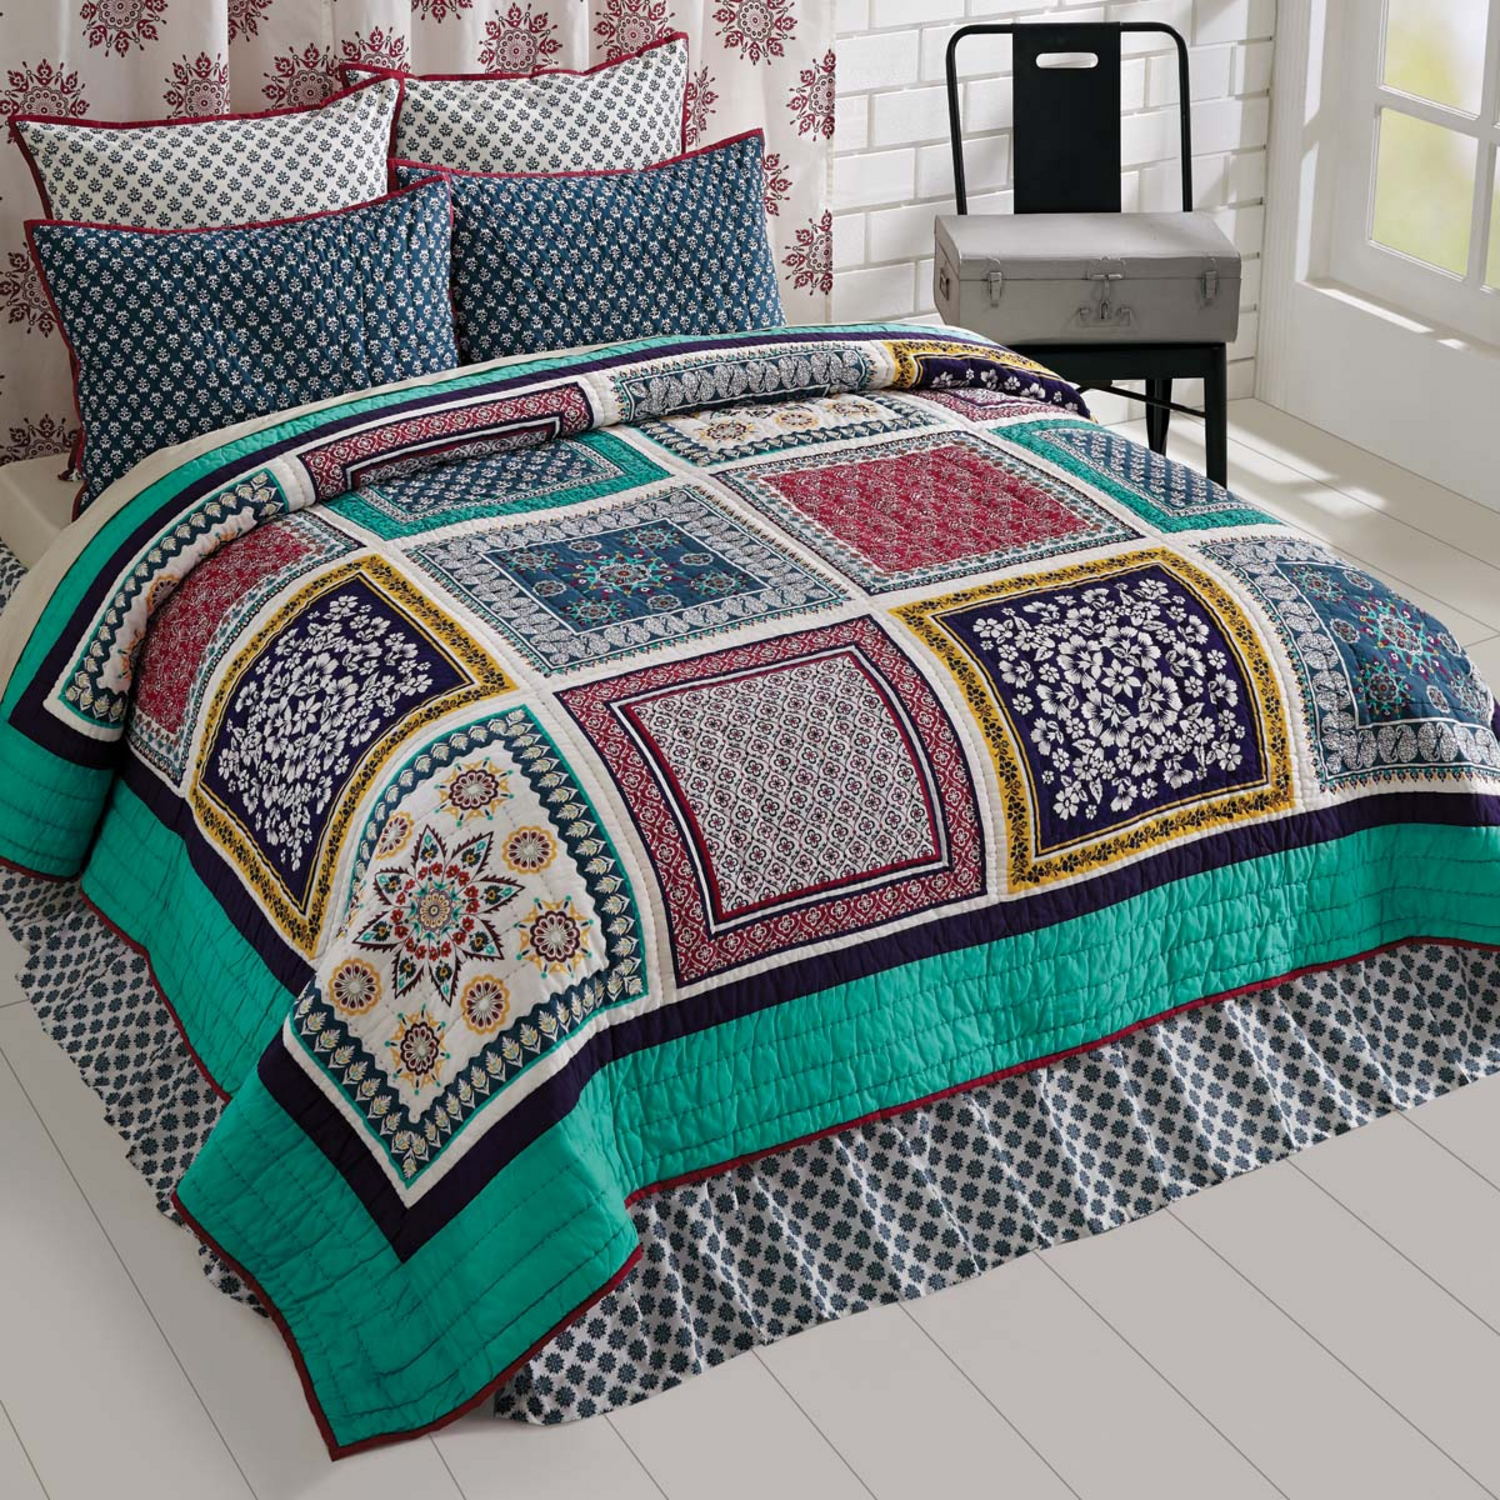 Mariposa By Vhc Brands Quilts Beddingsuperstore Com